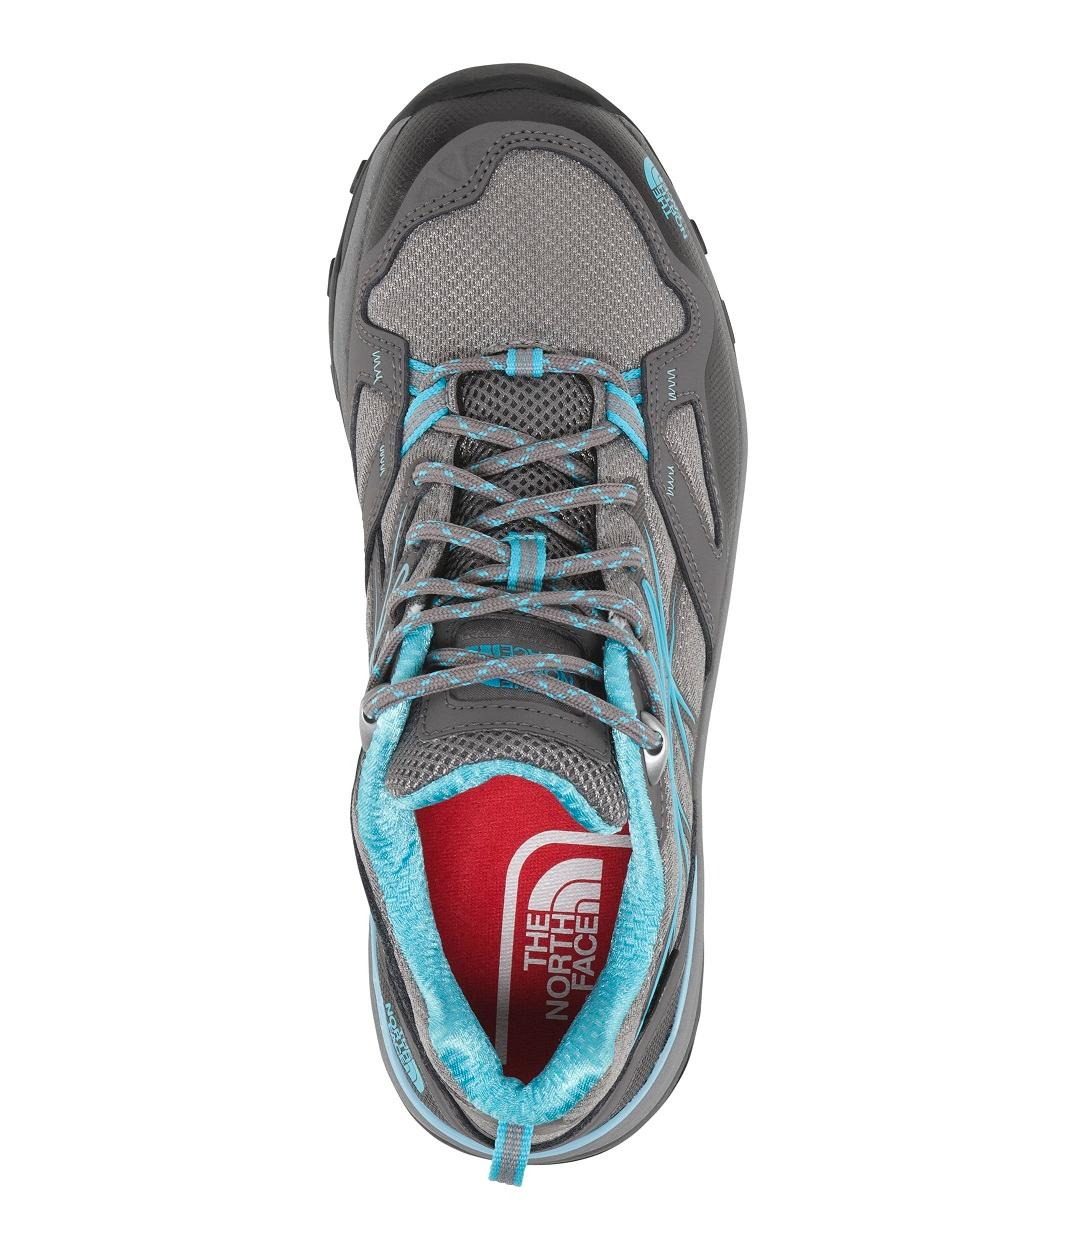 The North Face Women's Hedgehog Fastpack GTX Running Shoes